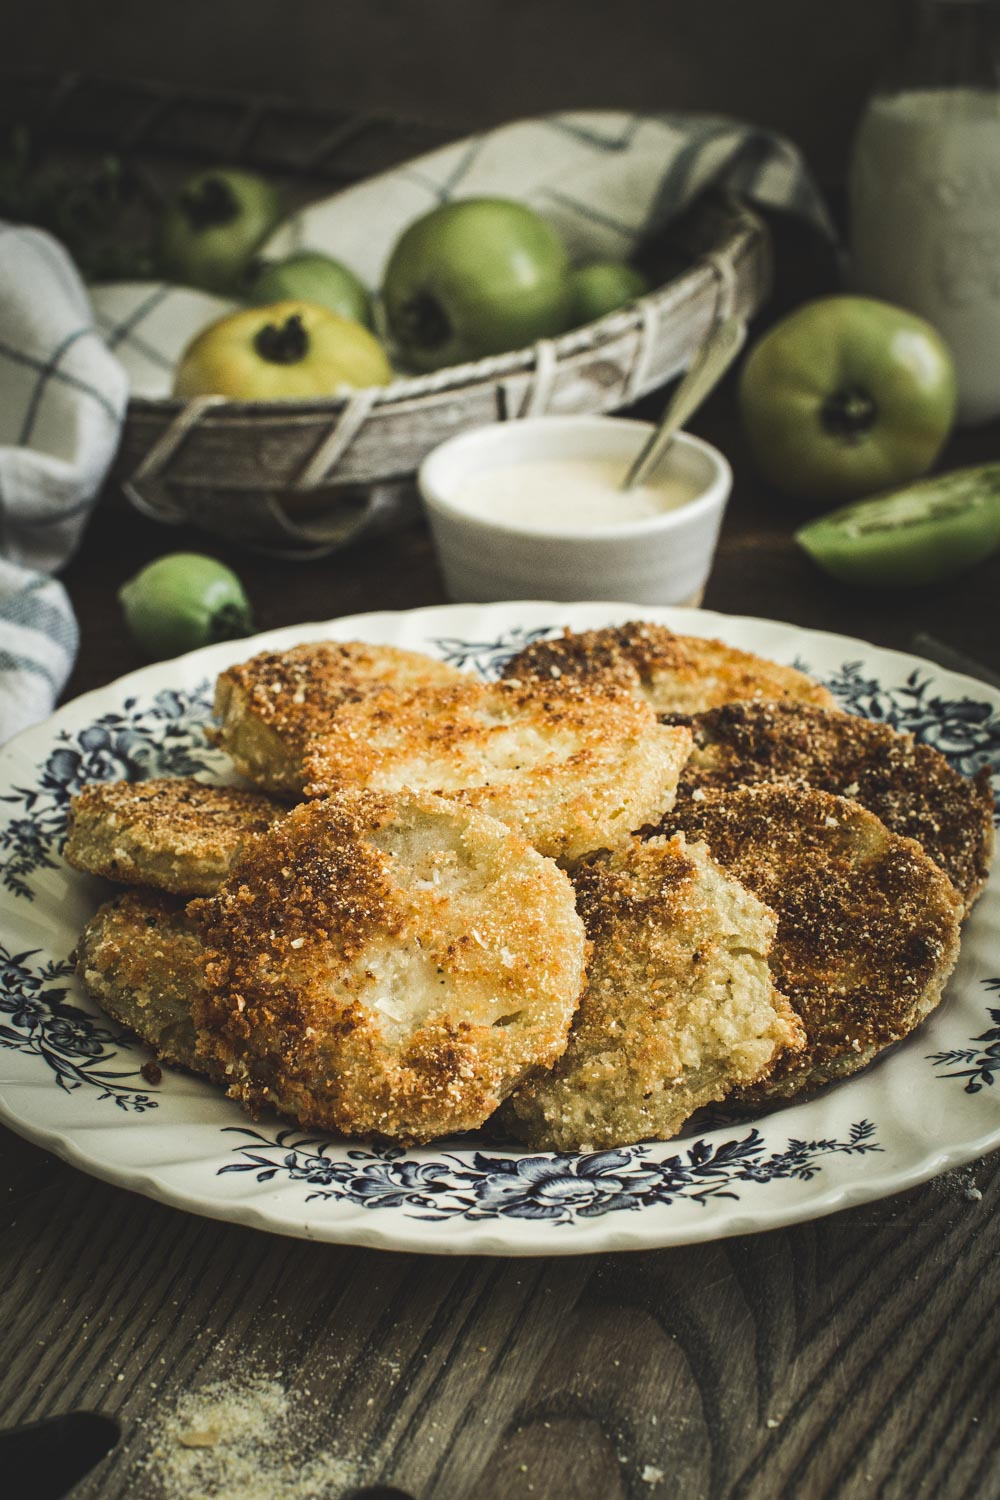 fried green tomatoes spread on large plate with blue flower design and white dipping sauce in background